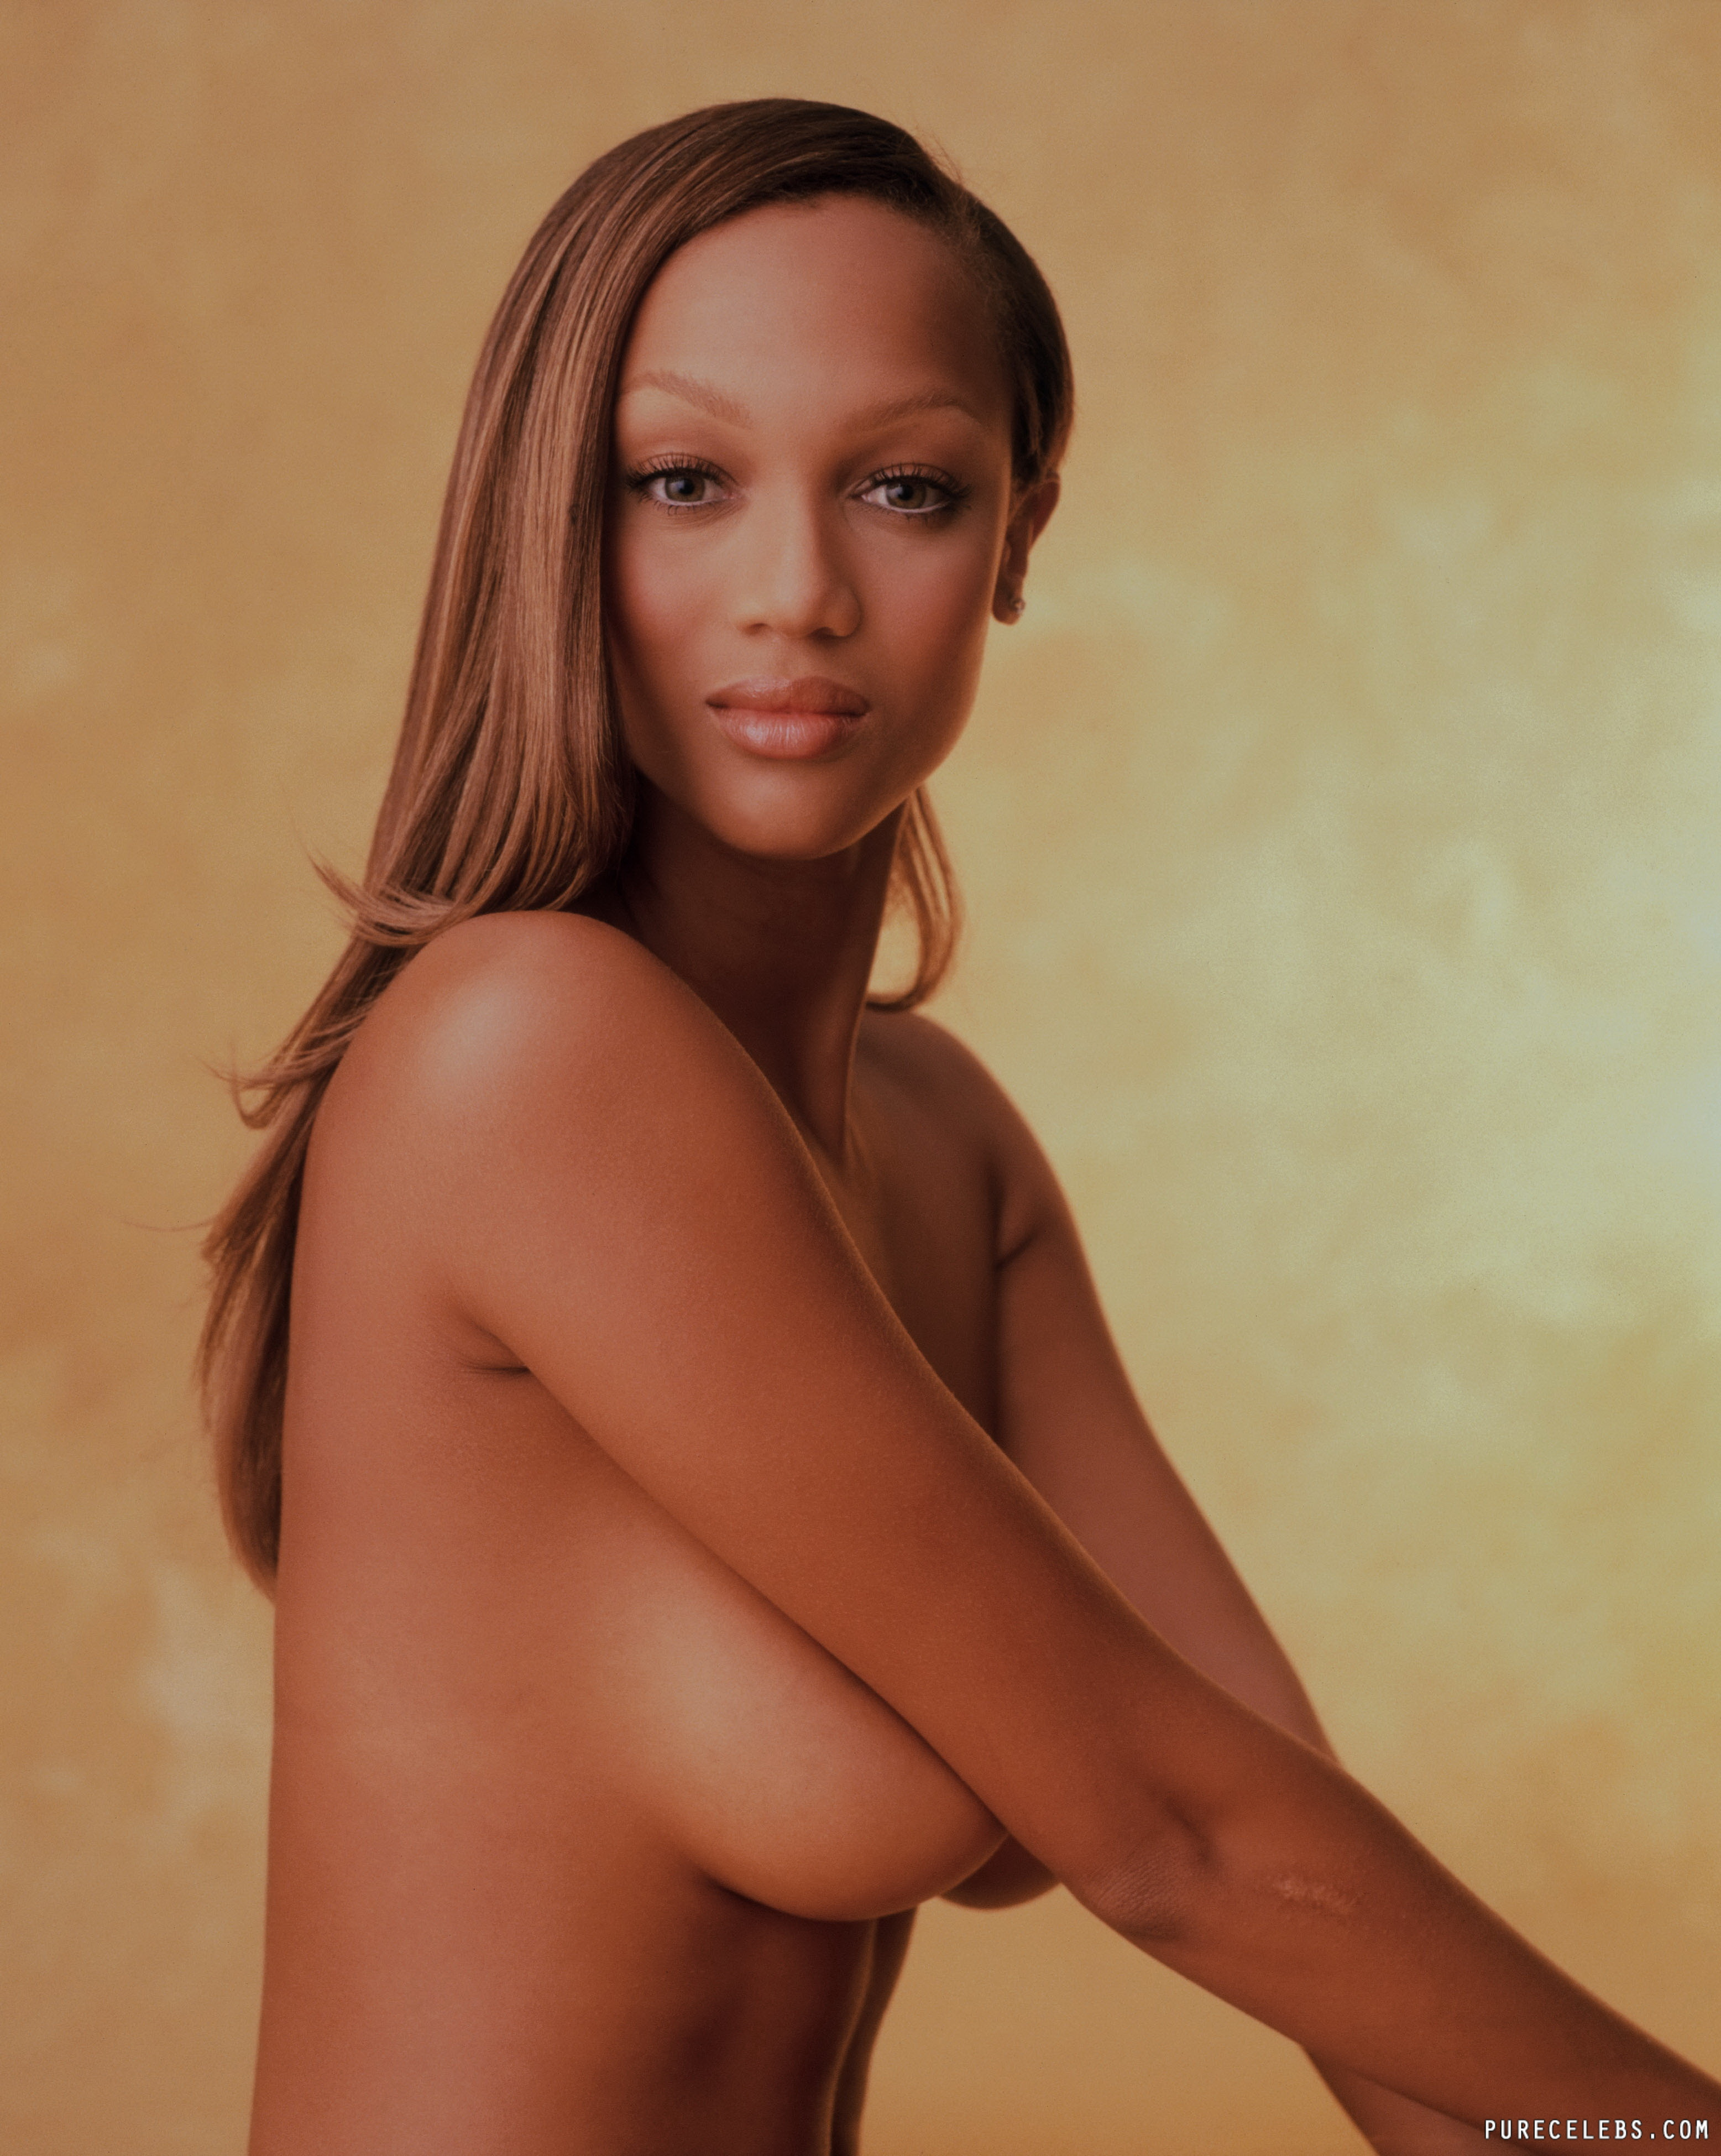 Naked picture of tyra banks